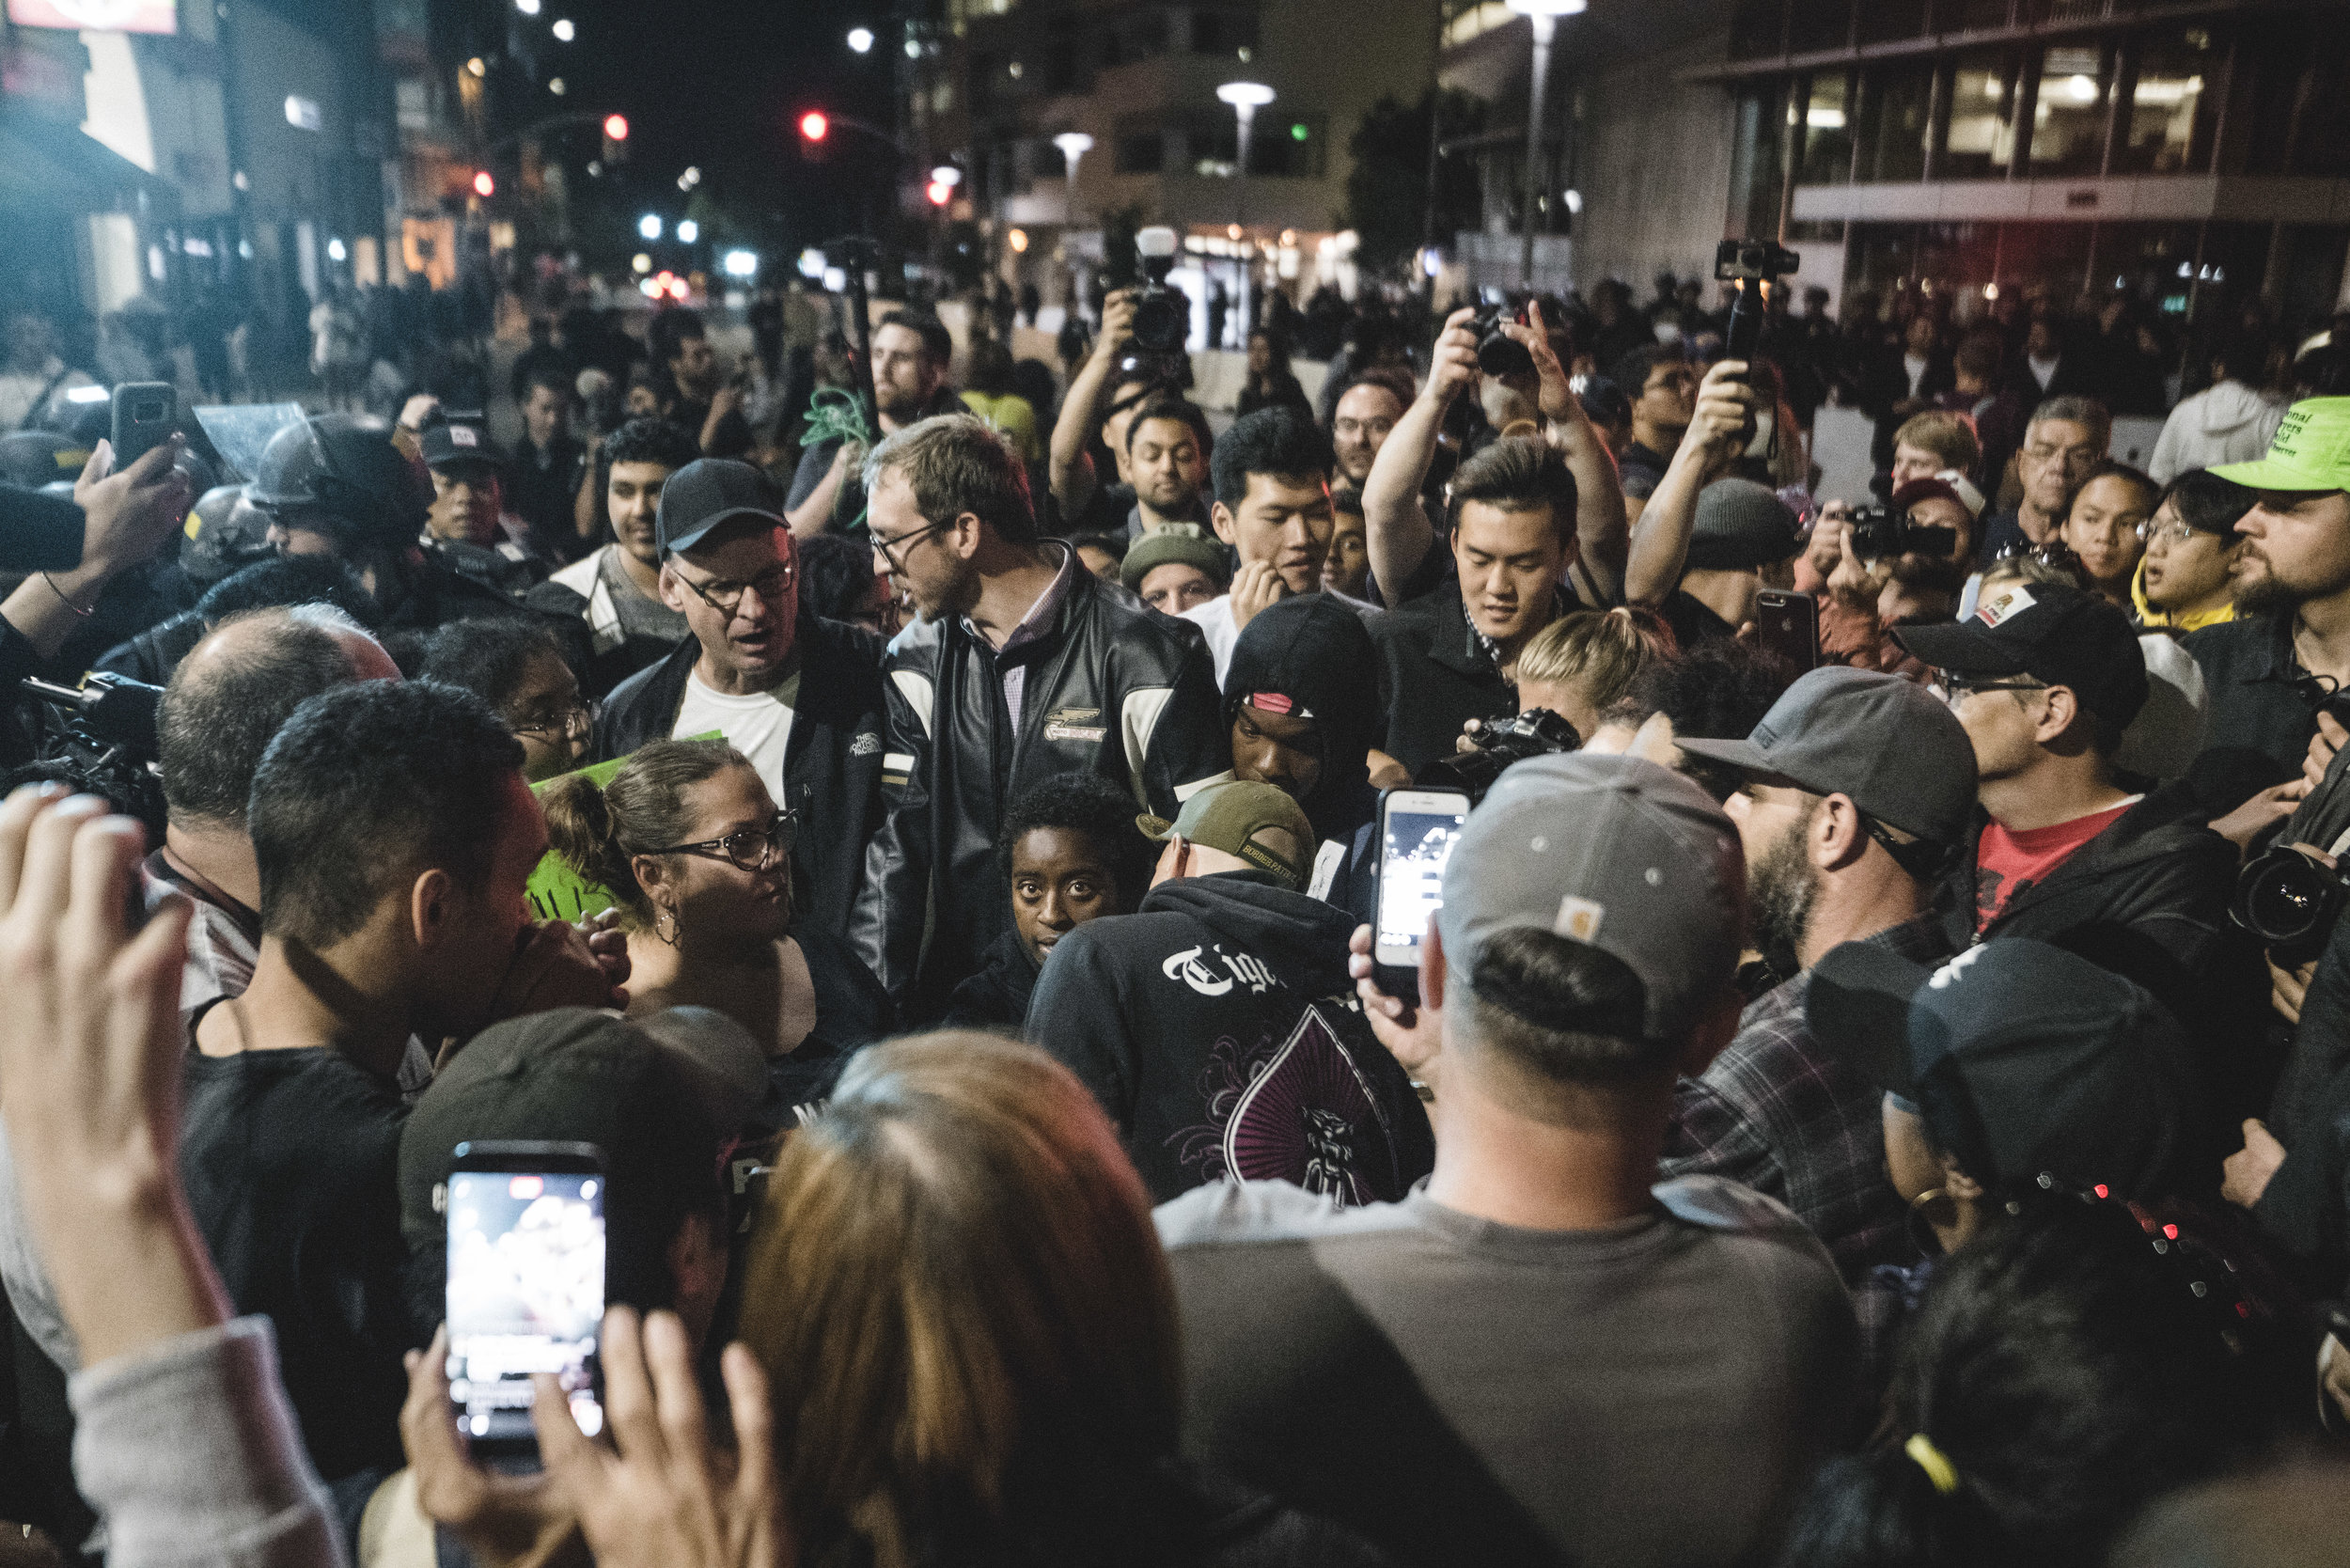 A trio of outspoken men provoke an angering group of counter-protesters. Within minutes, a handful of individuals are arrested.